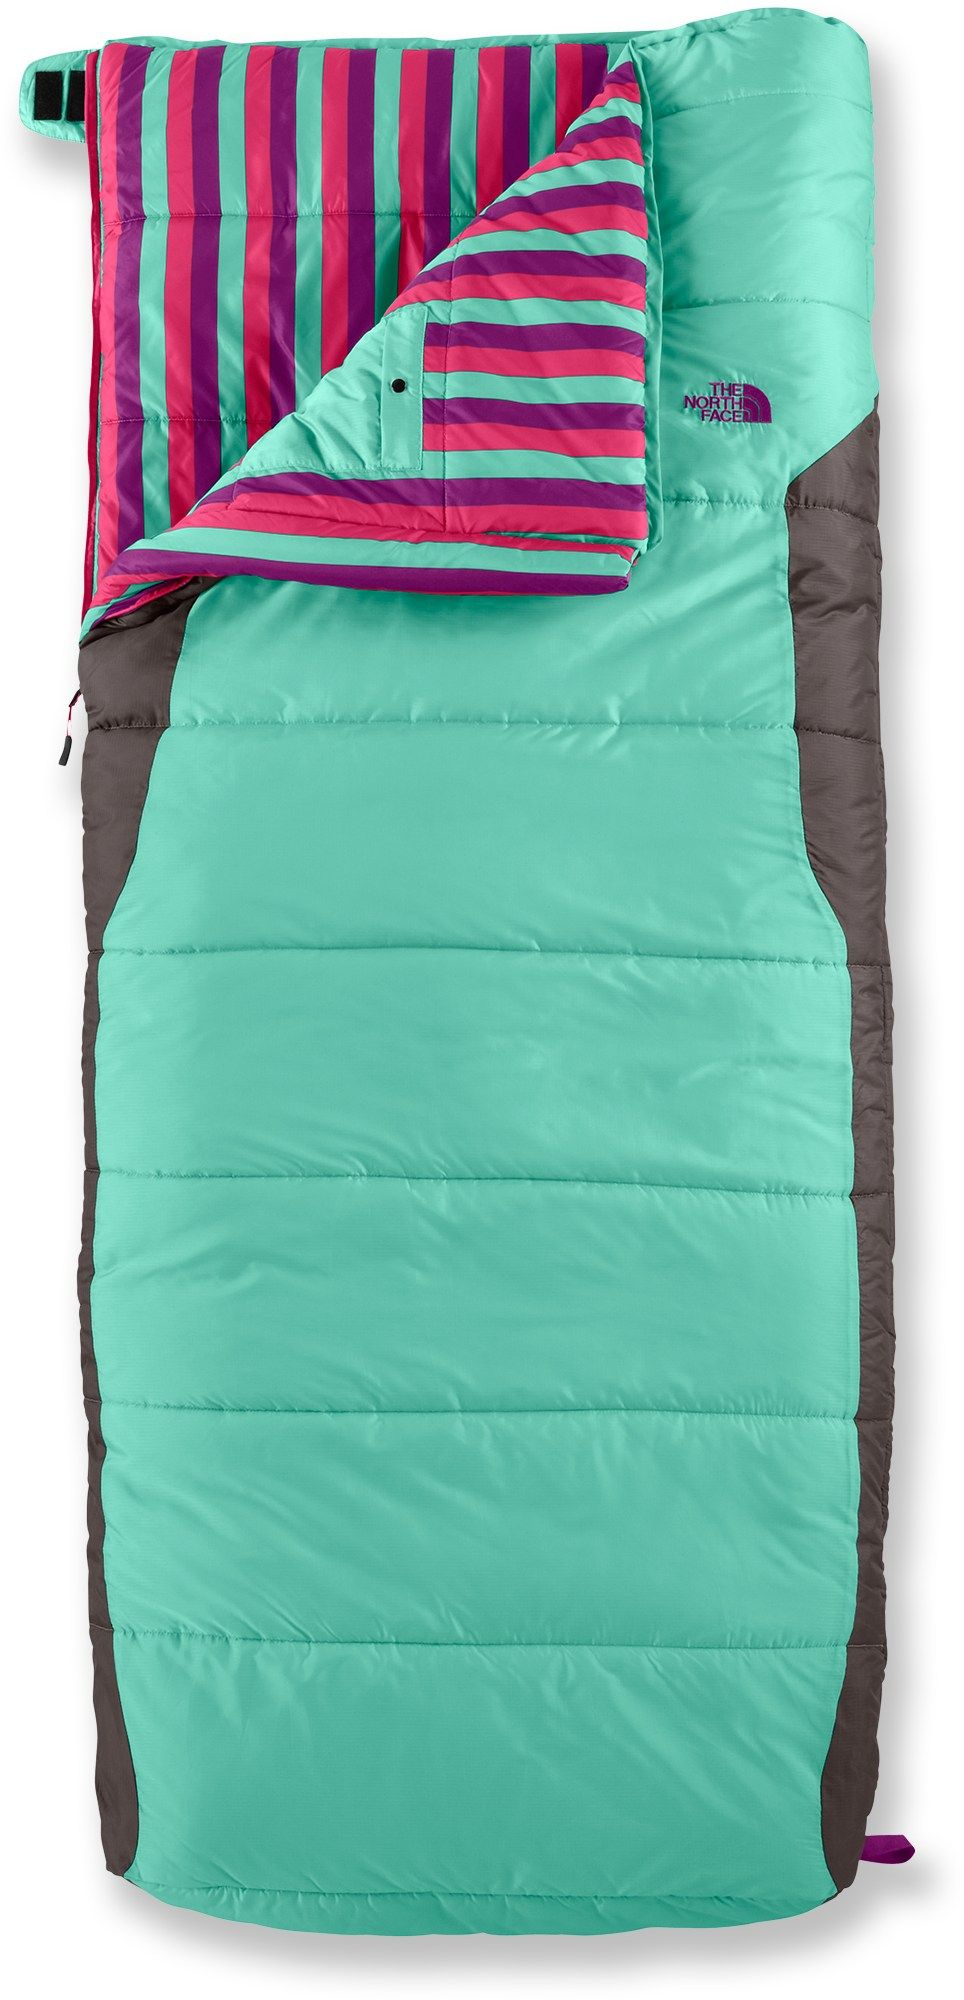 Keep The Kiddos Warm In This Colorful Sleeping Bag From North Face